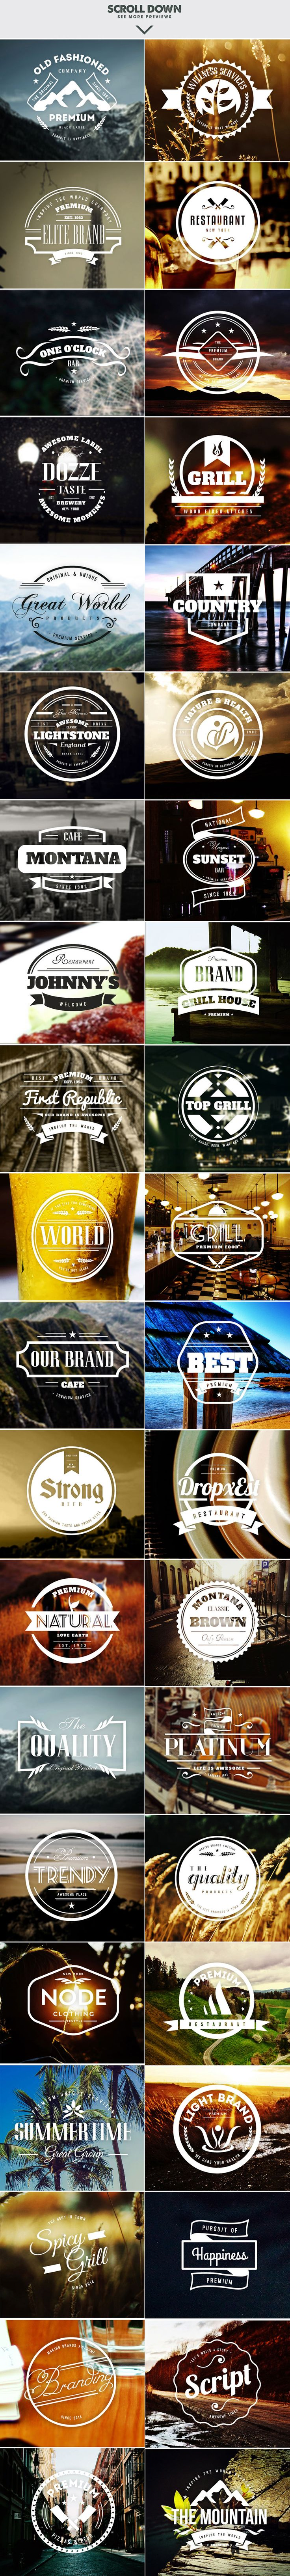 $20 for 650 logo and badge templates? Now THAT's a steal!